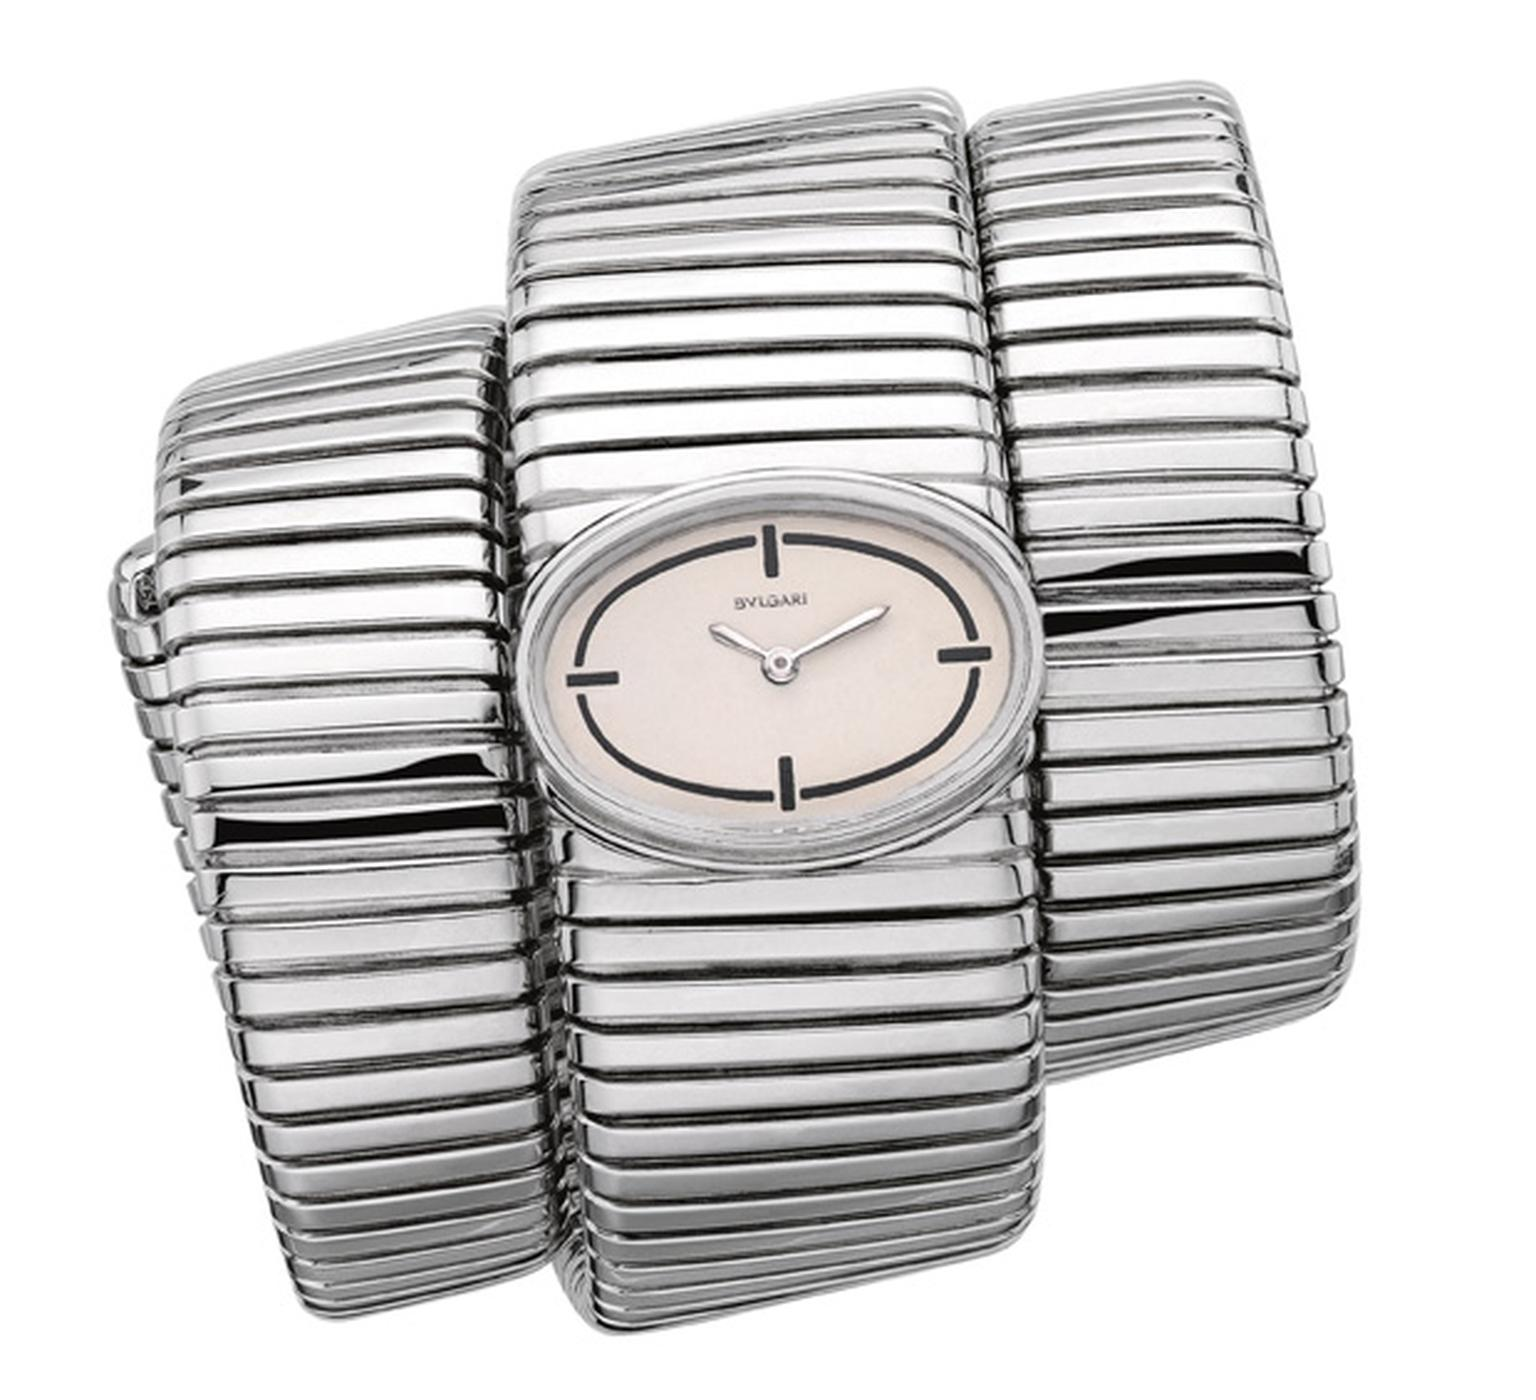 Bulgari white gold Tubogas watch 1965